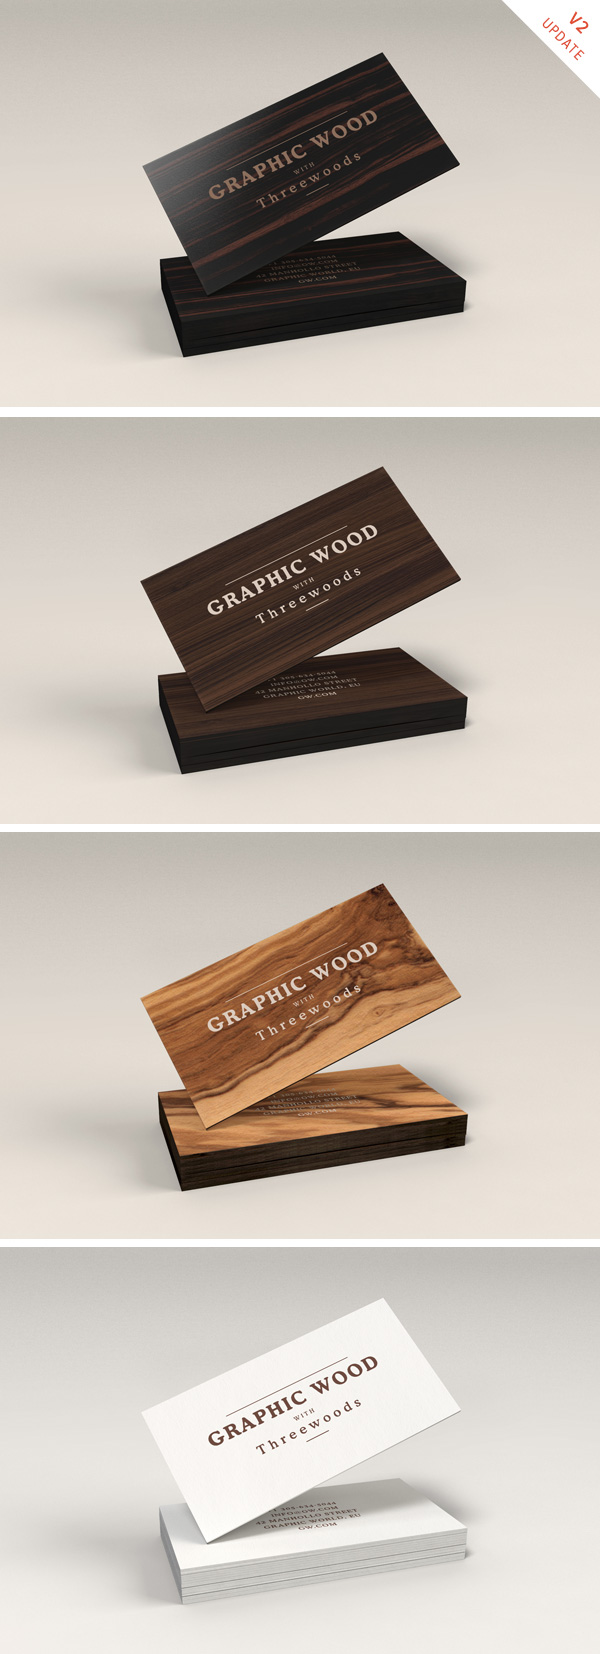 70 free psd business card mockups for great deals free psd templates wooden business cards mockup v2 600 reheart Gallery